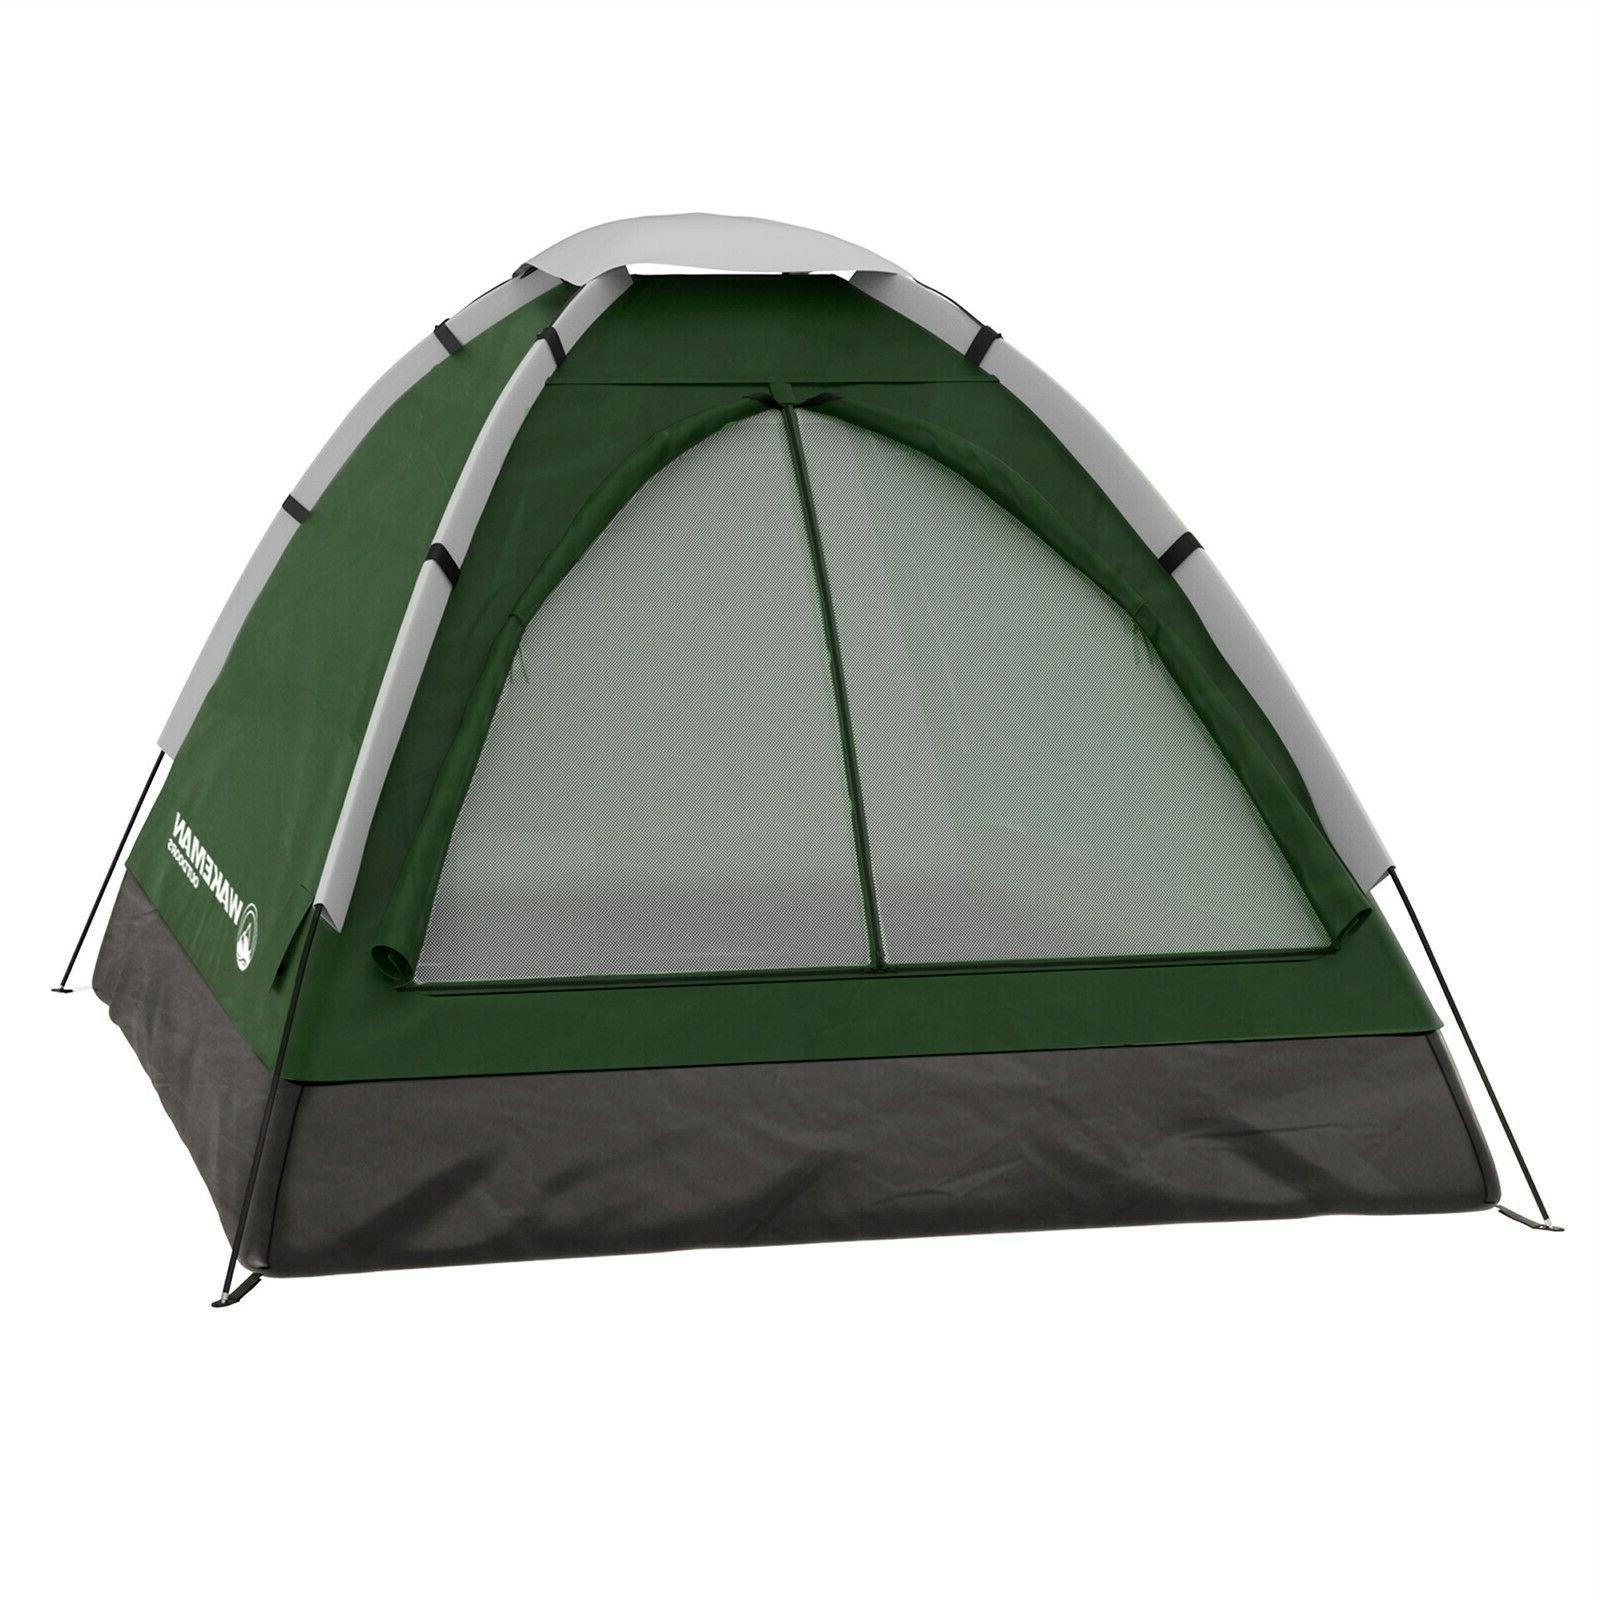 Two 2 Green Carry Kids Camping Assembly